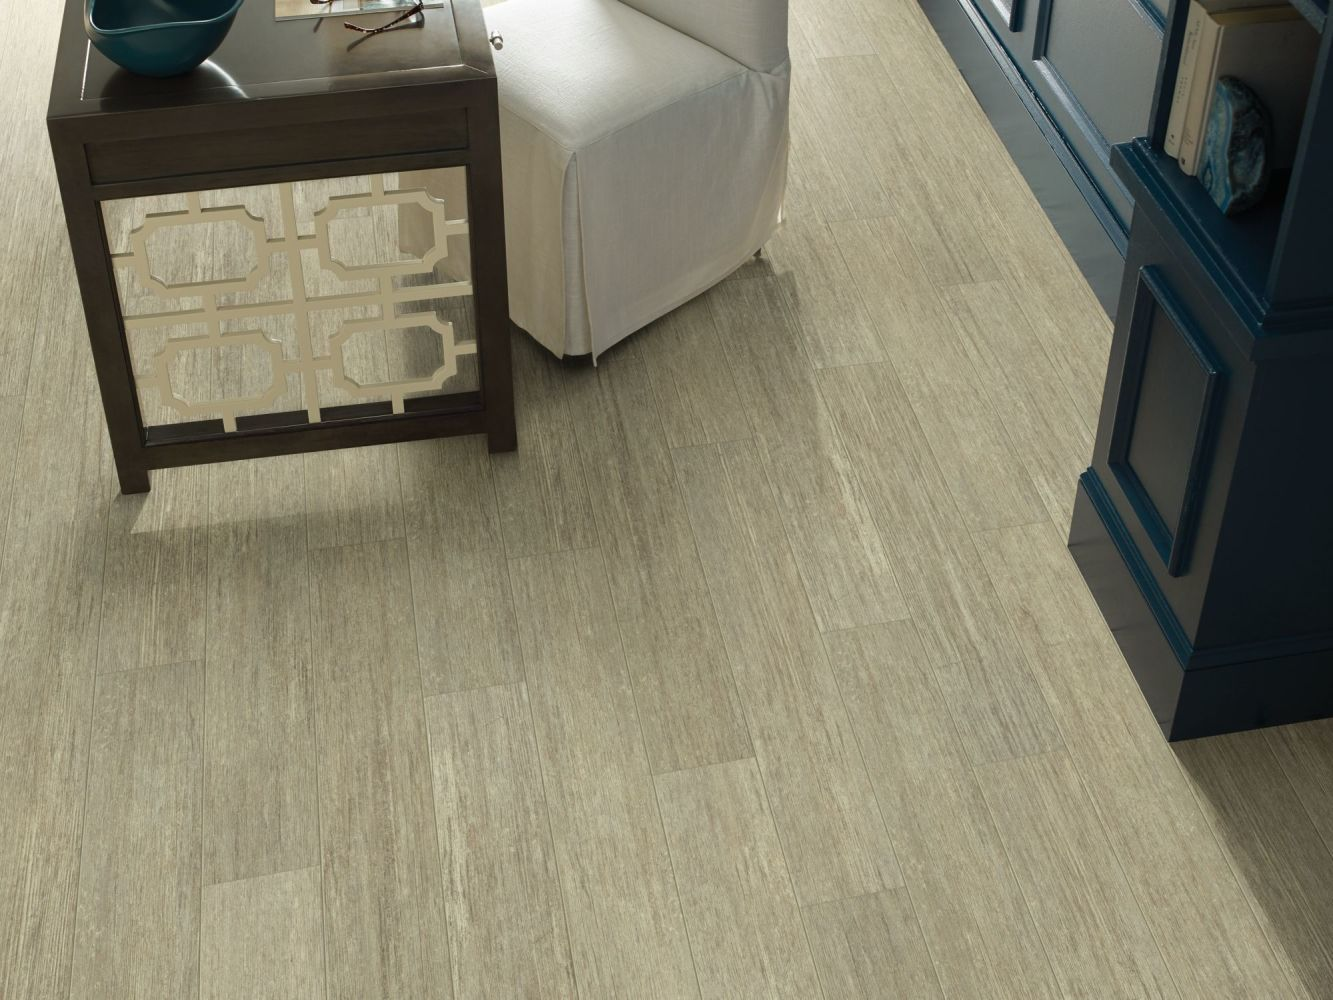 Shaw Floors Resilient Property Solutions Downtownusa WPC + Peachtree Street 00216_VE275